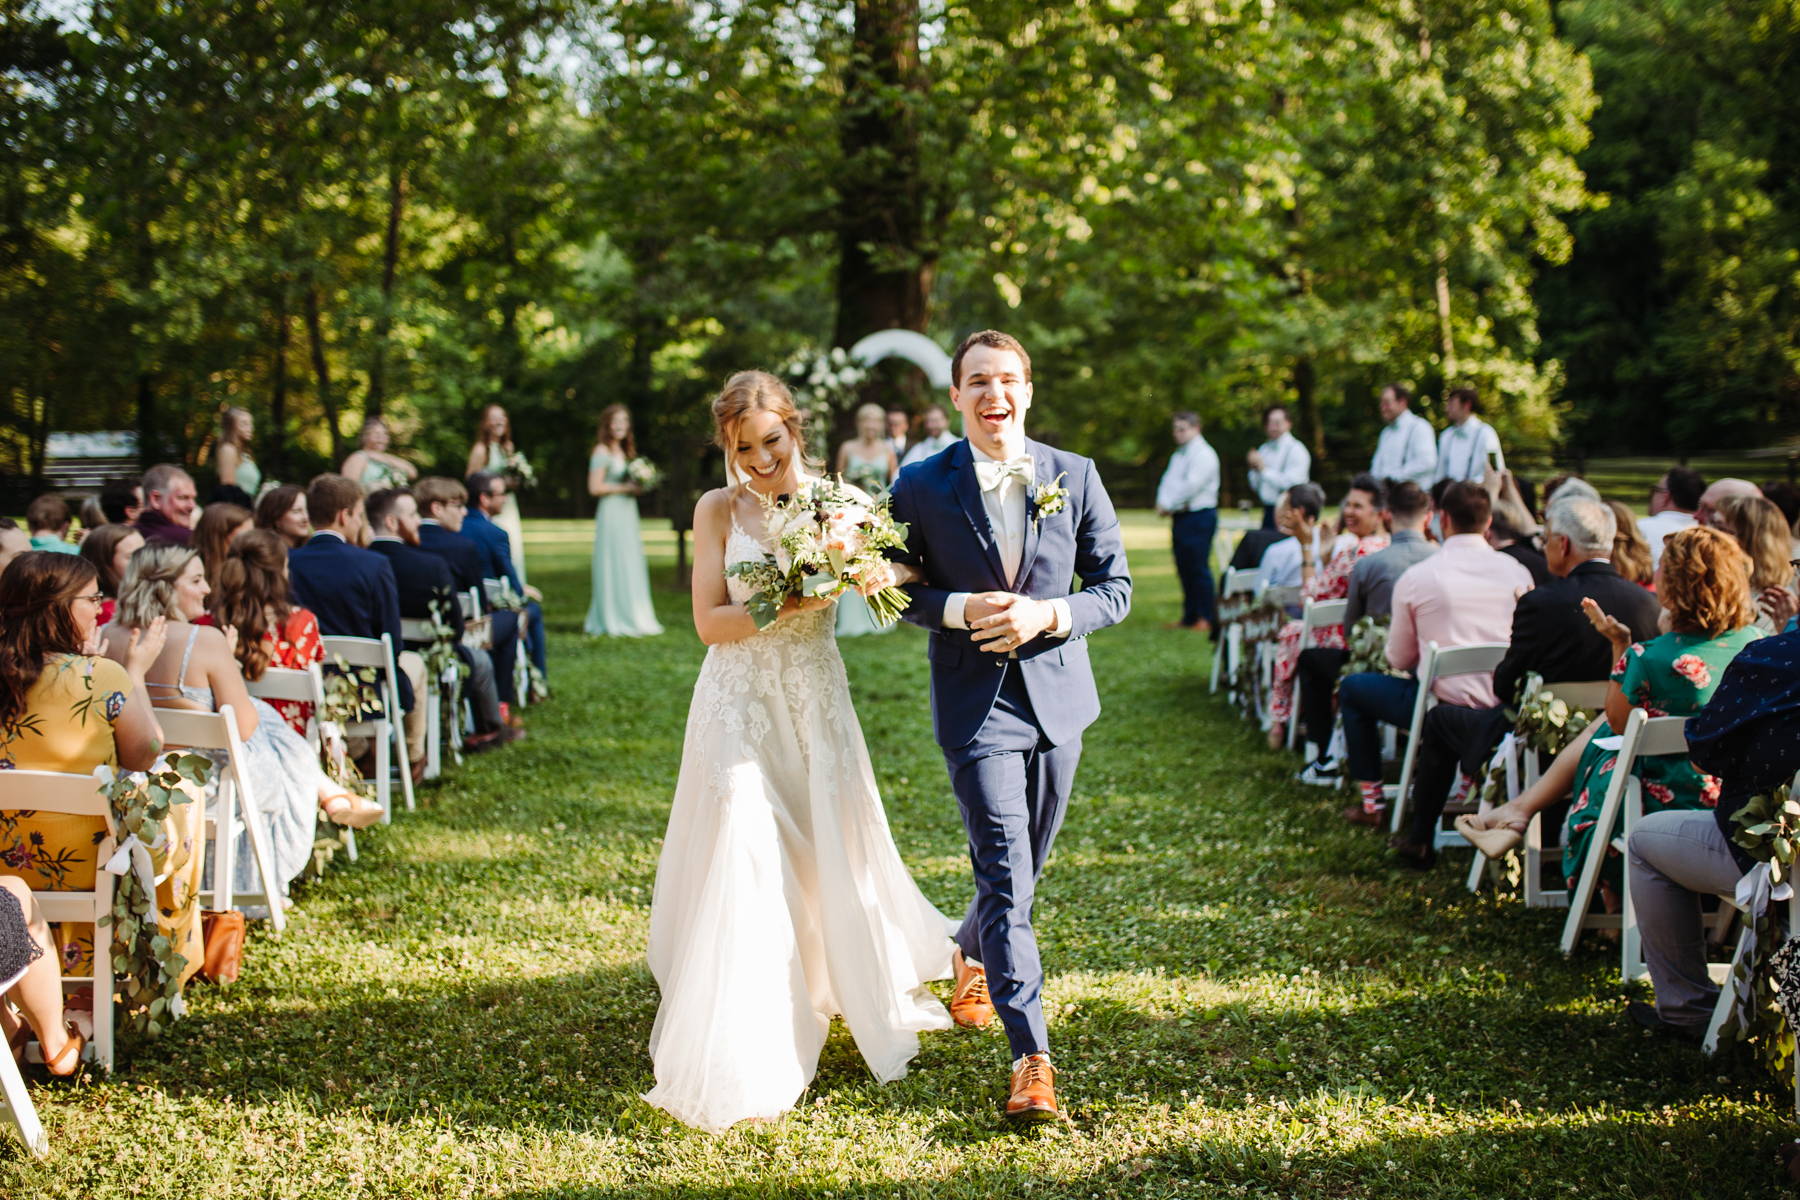 Bride and groom celebrate walking down the aisle at a stables at strawberry creek wedding in knoxville, tennessee